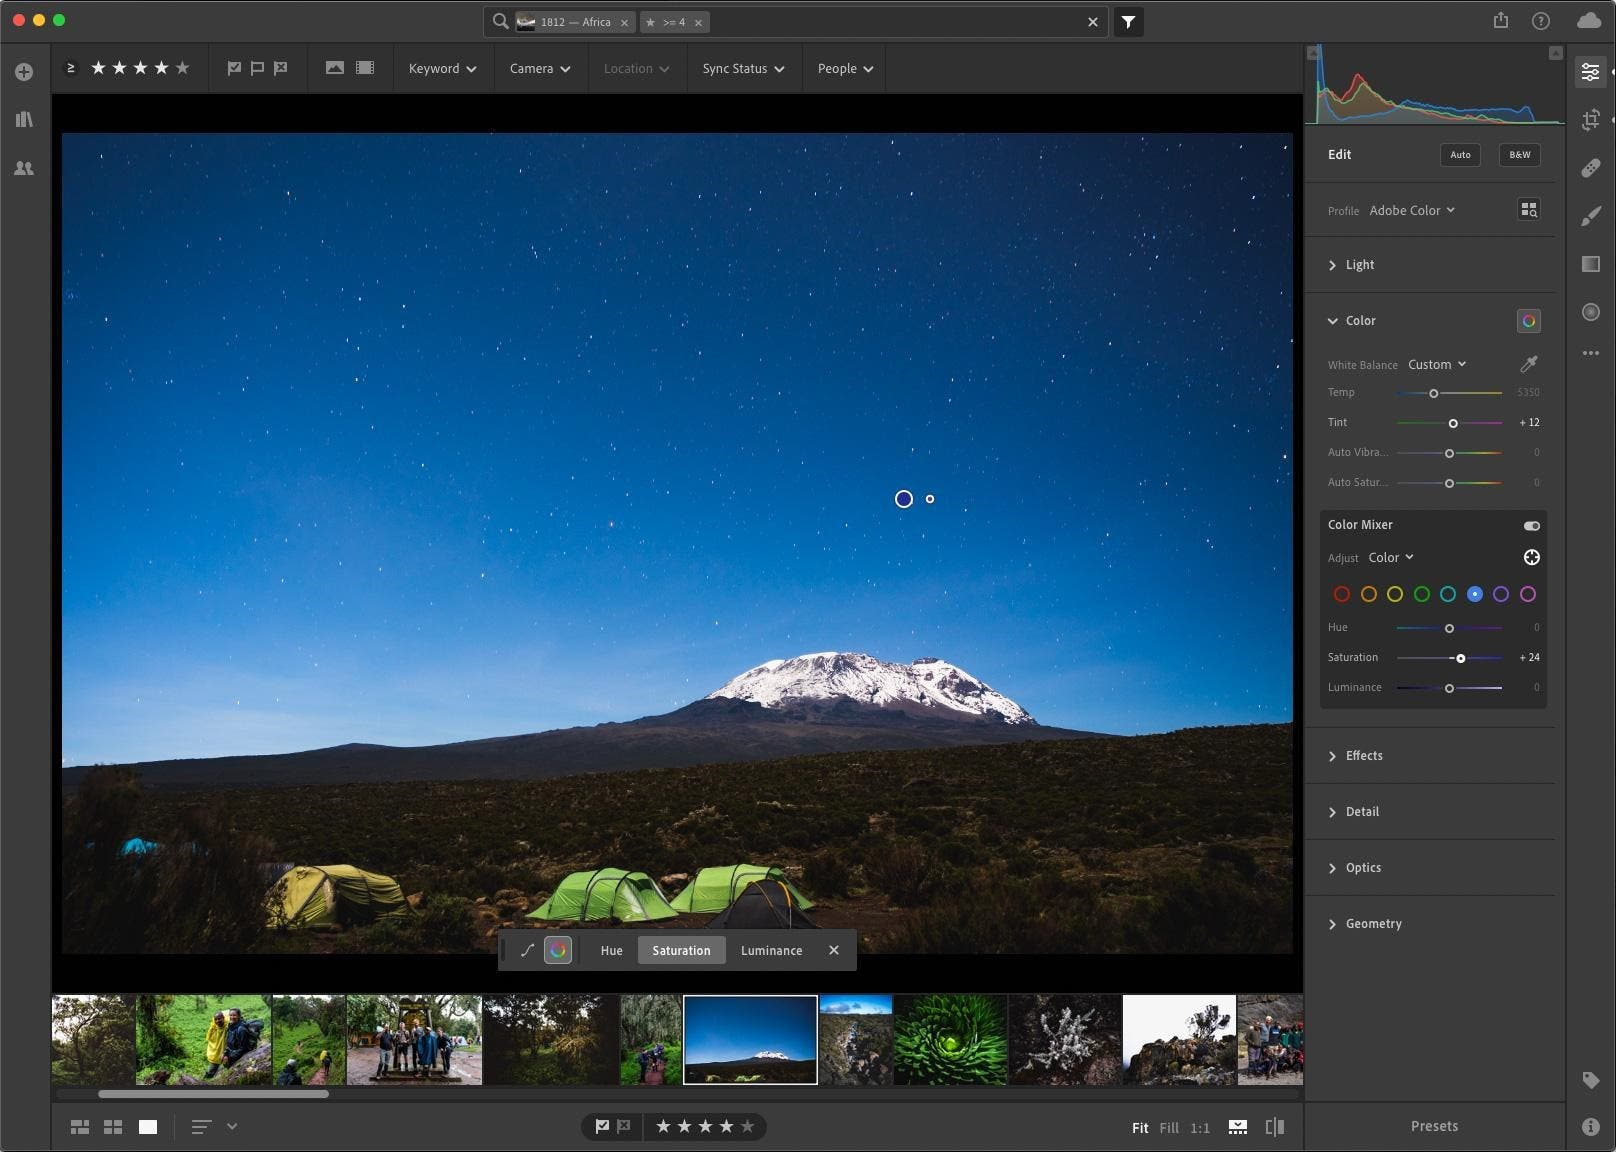 Adobe Lightroom's Latest Update Should Play Well with Fujifilm RAW Files